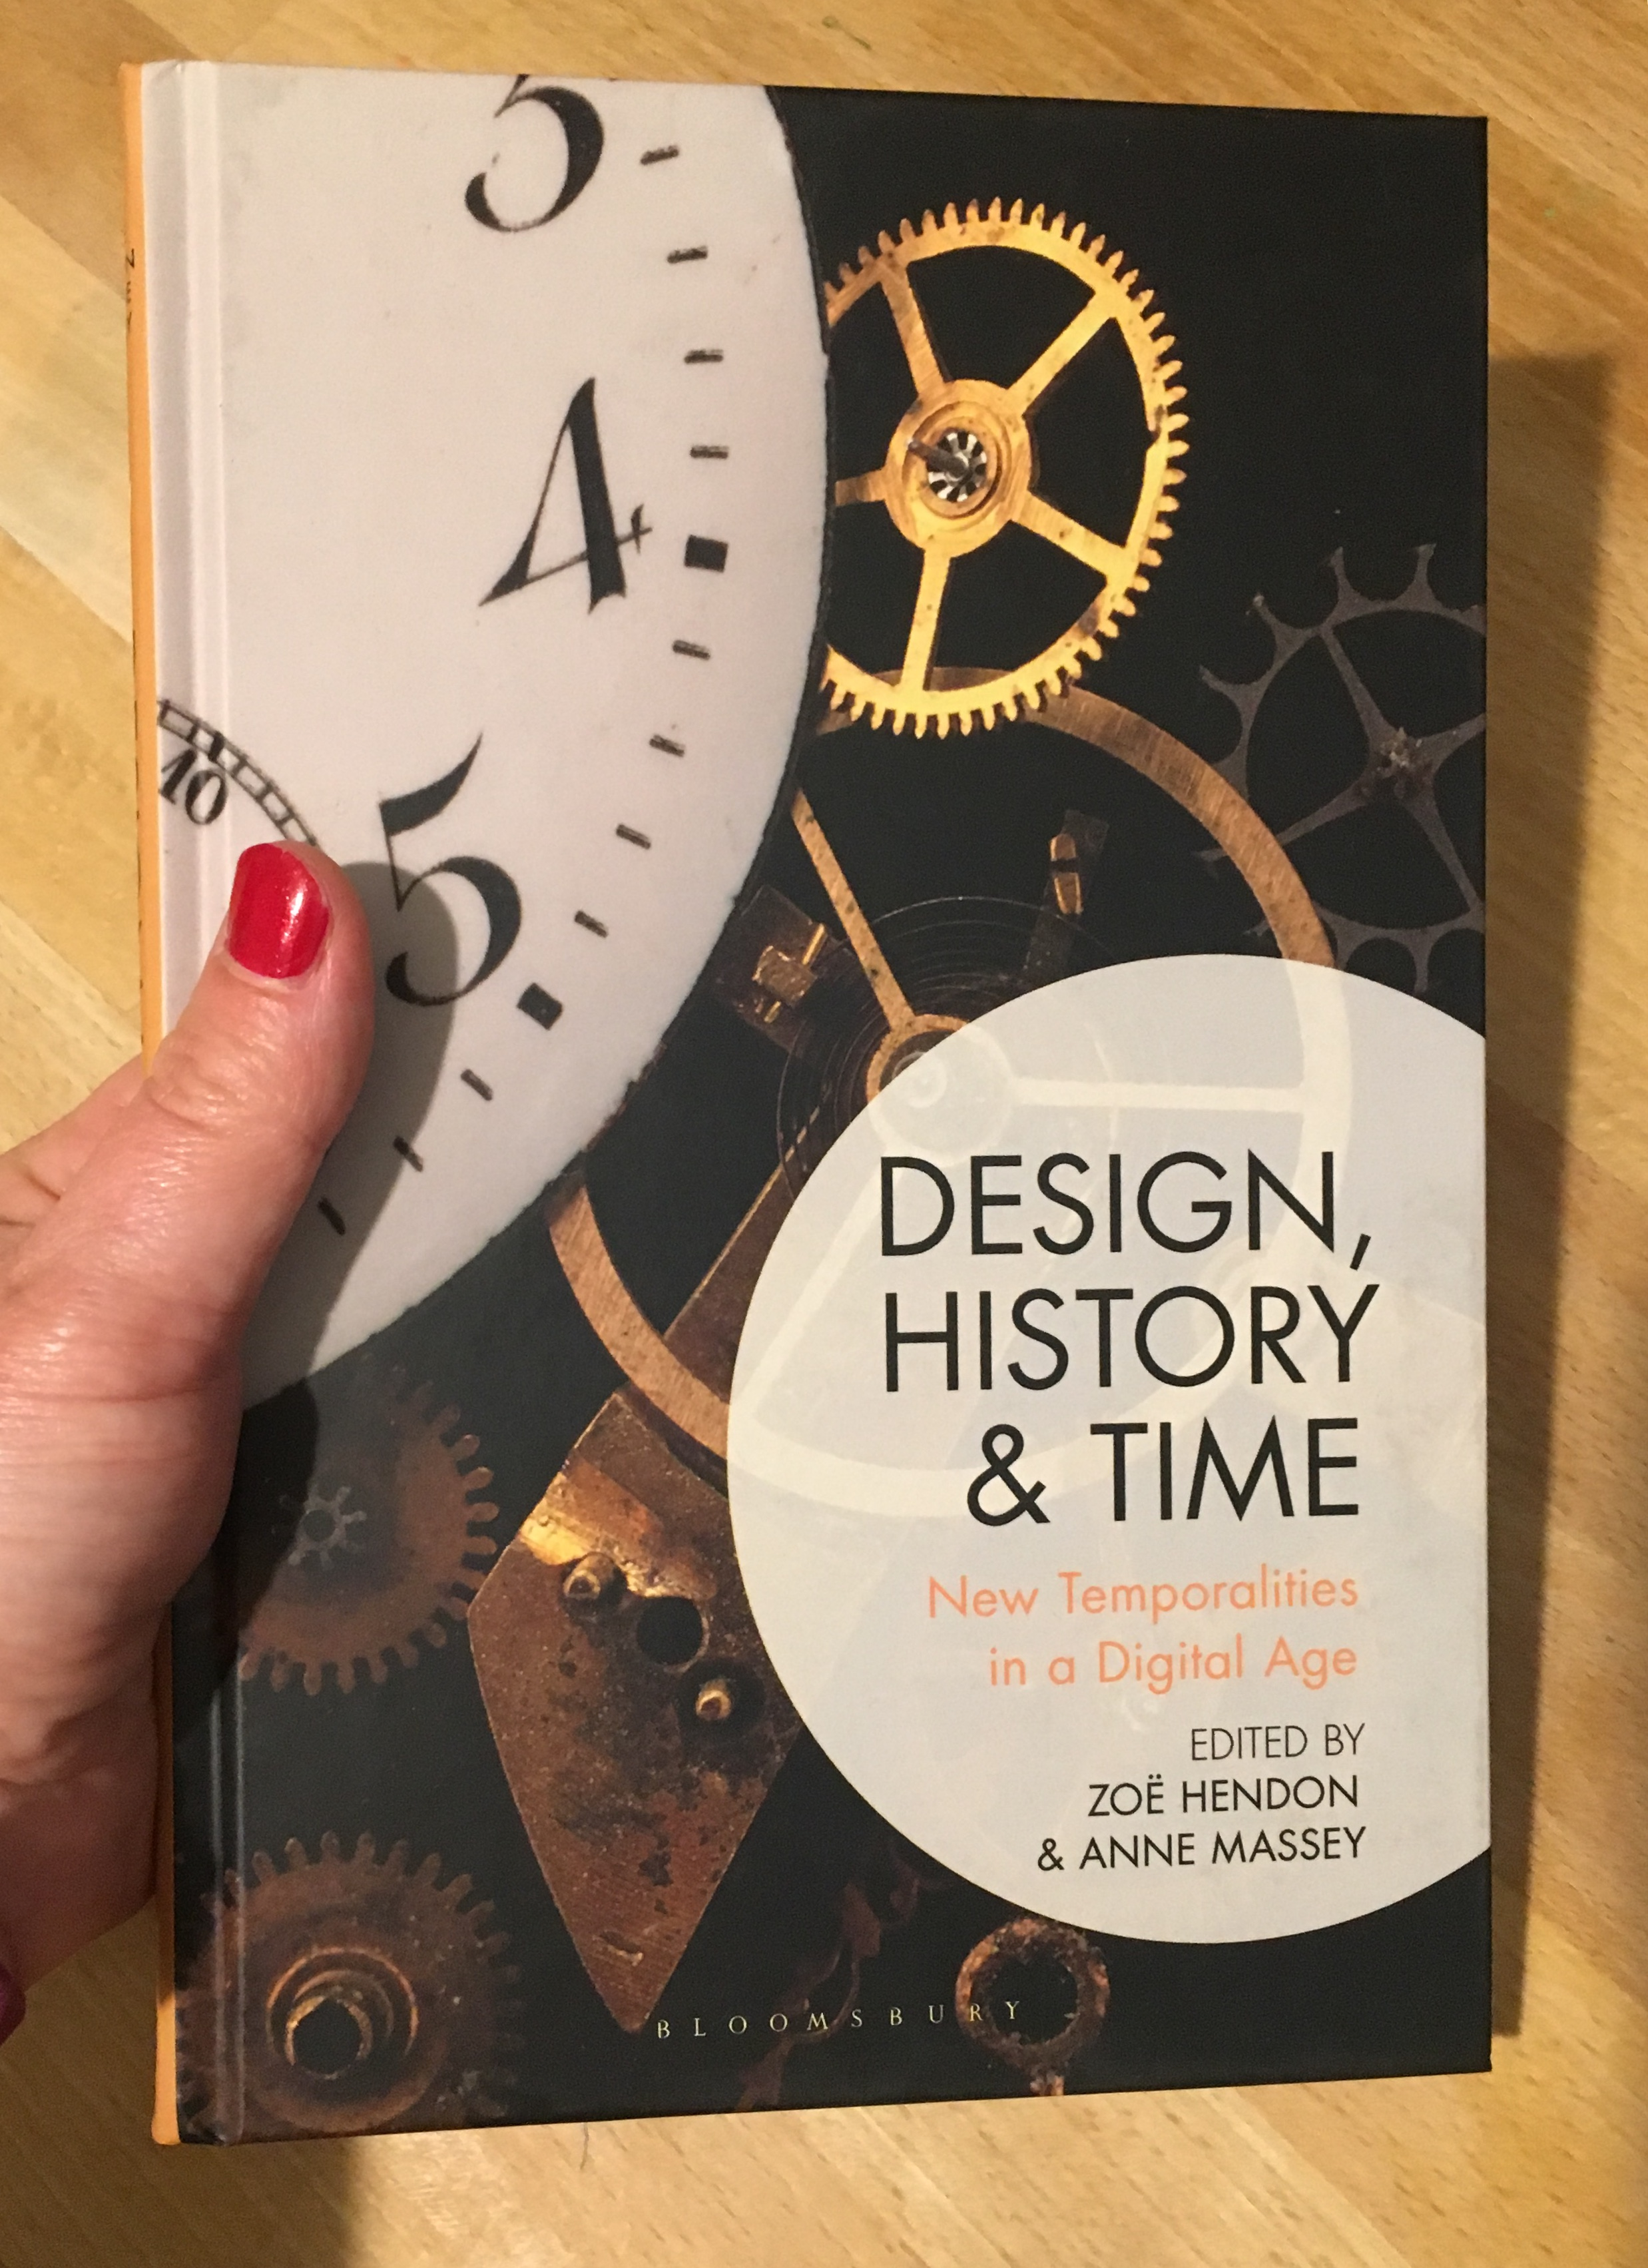 - Design, History and Time, edited by Zoë Hendon and Anne Massey (Bloomsbury 2019).